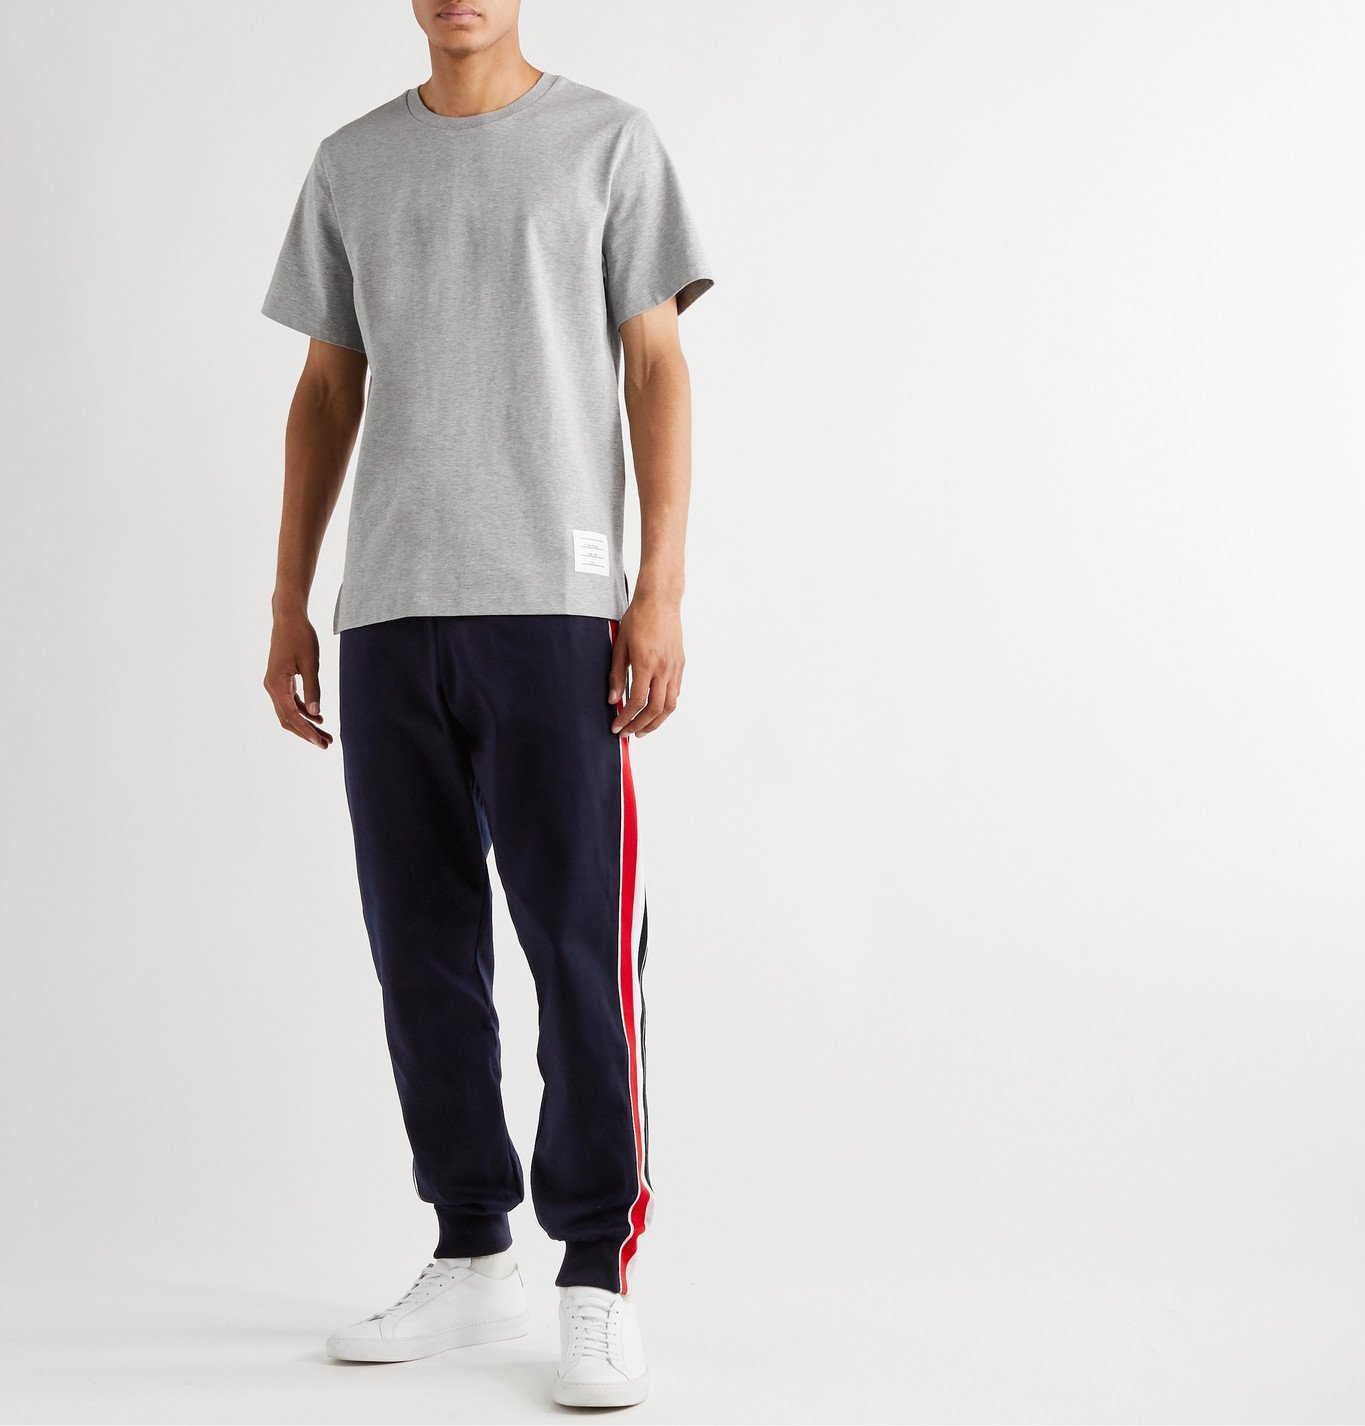 Thom Browne - Tapered Grosgrain-Trimmed Striped Cotton-Jersey Sweatpants - Blue